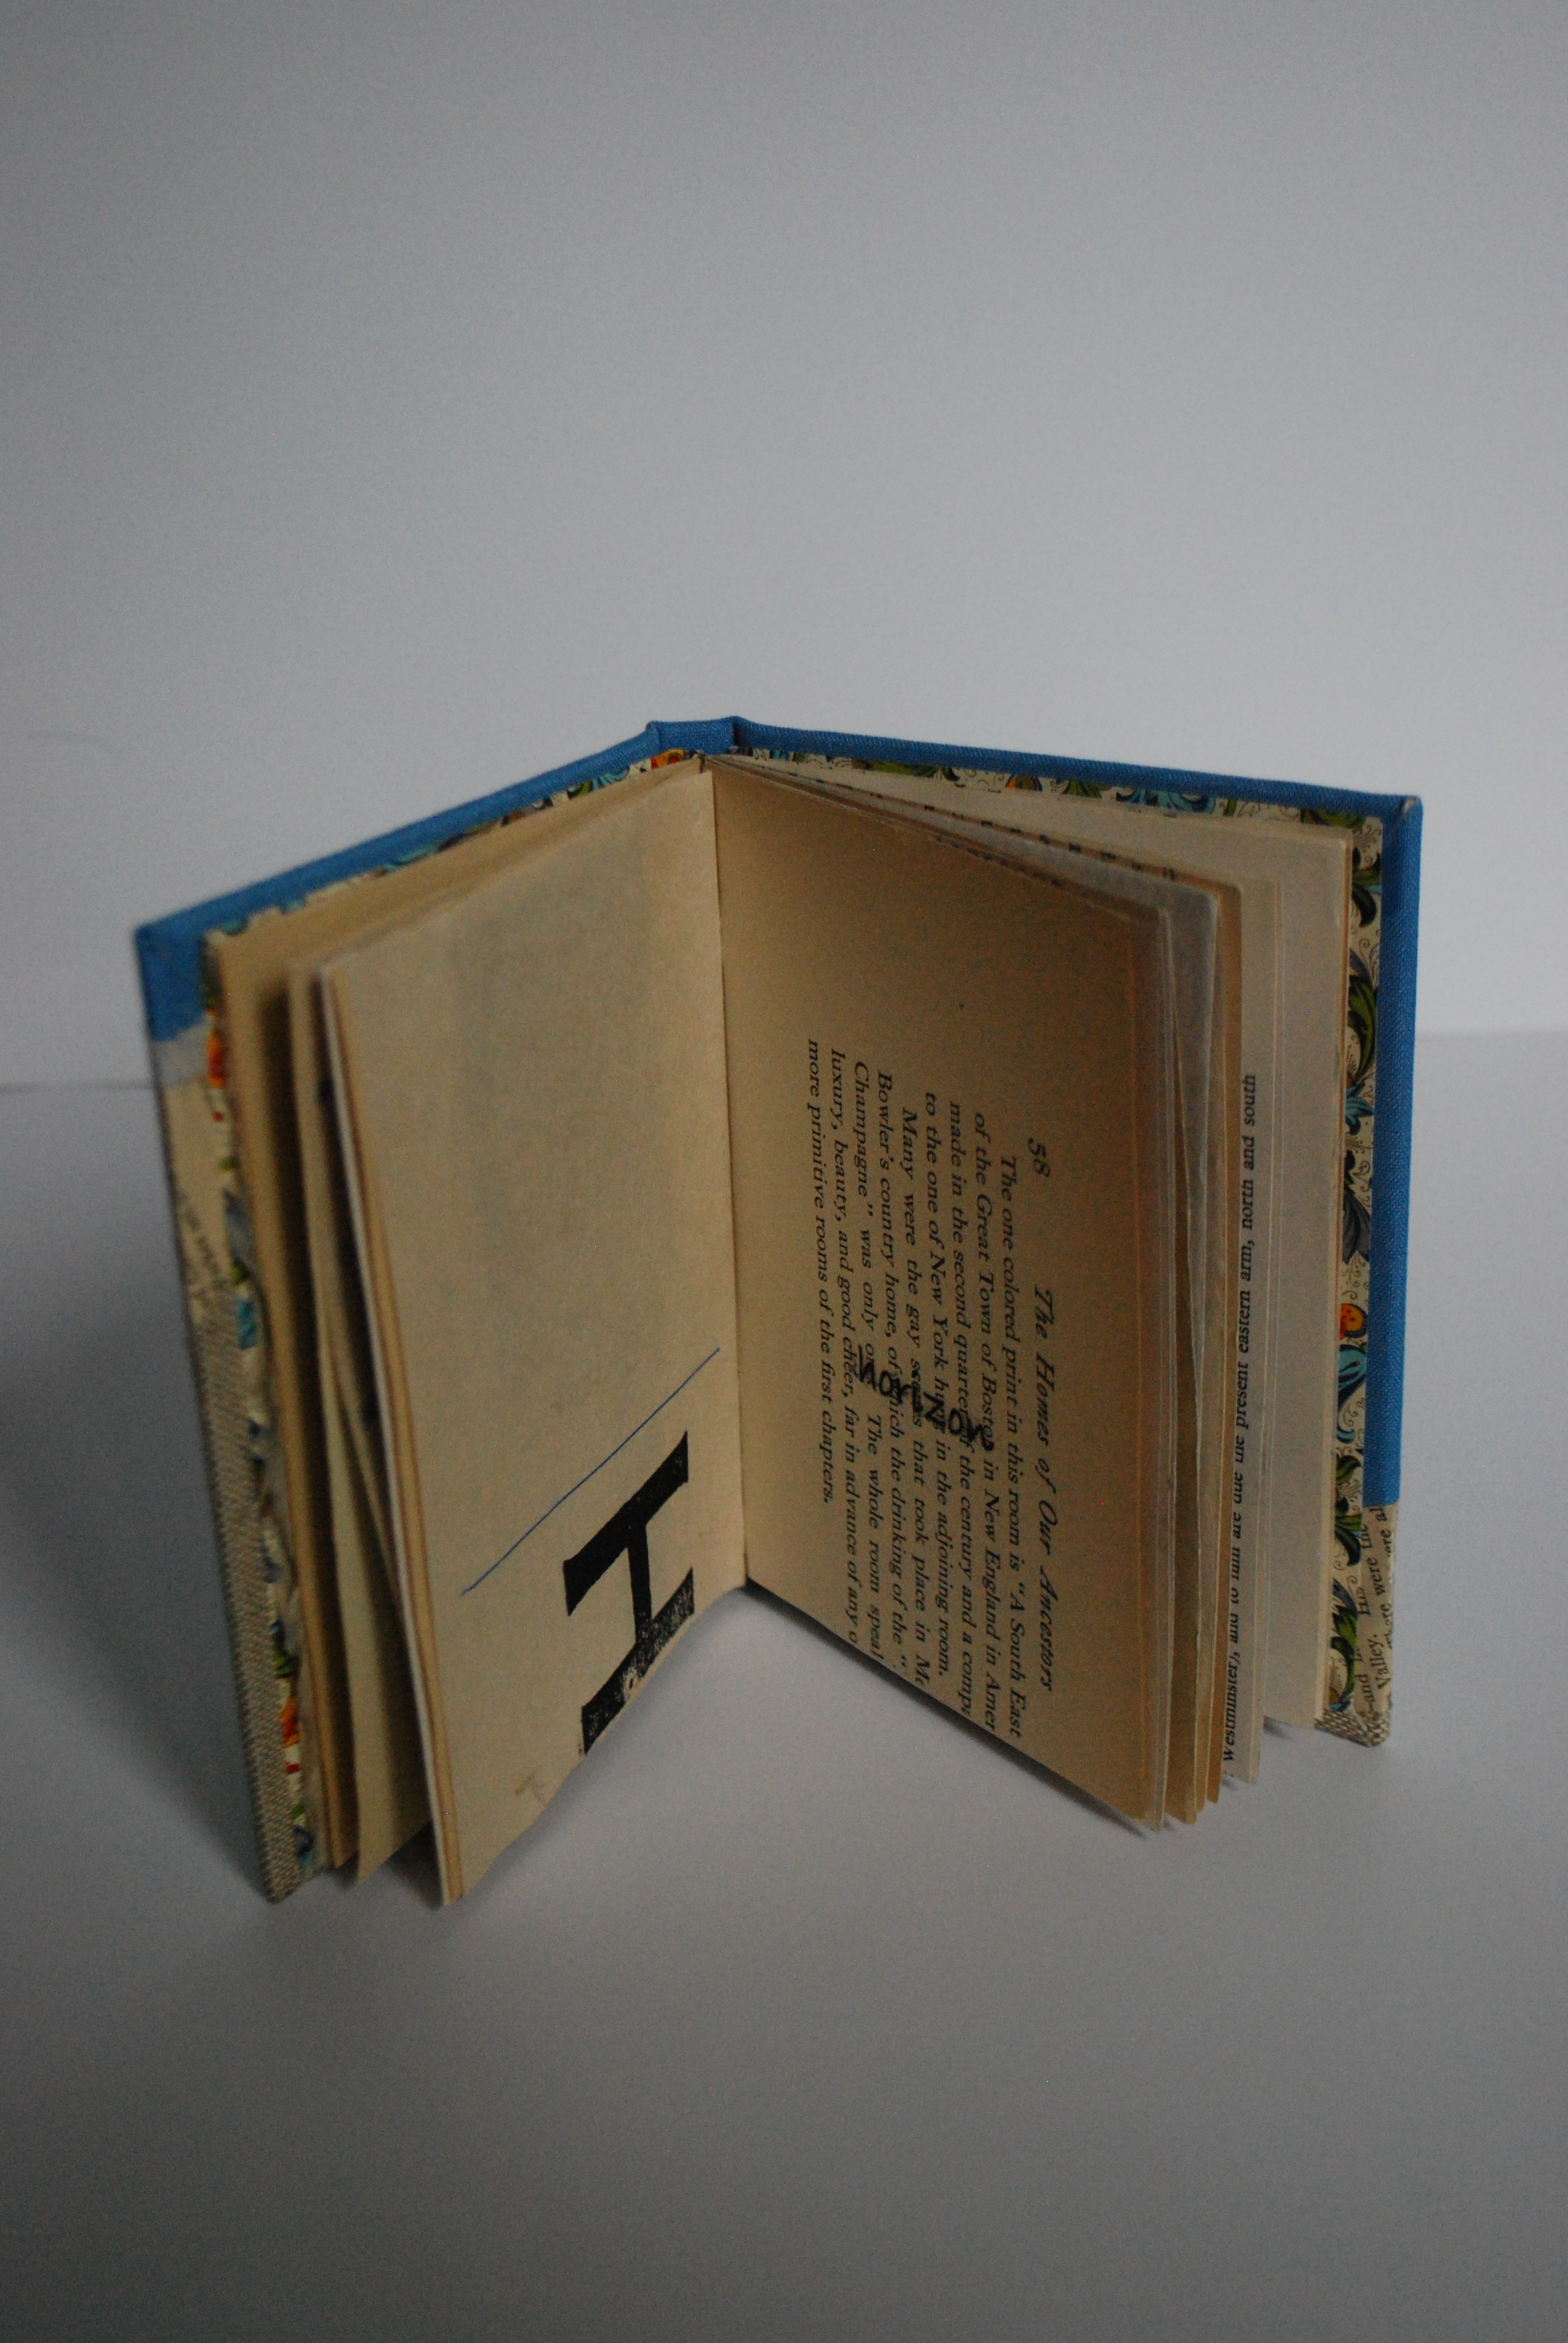 """Book opened to """"H"""" showing text """"horizon"""" on the altered book page"""